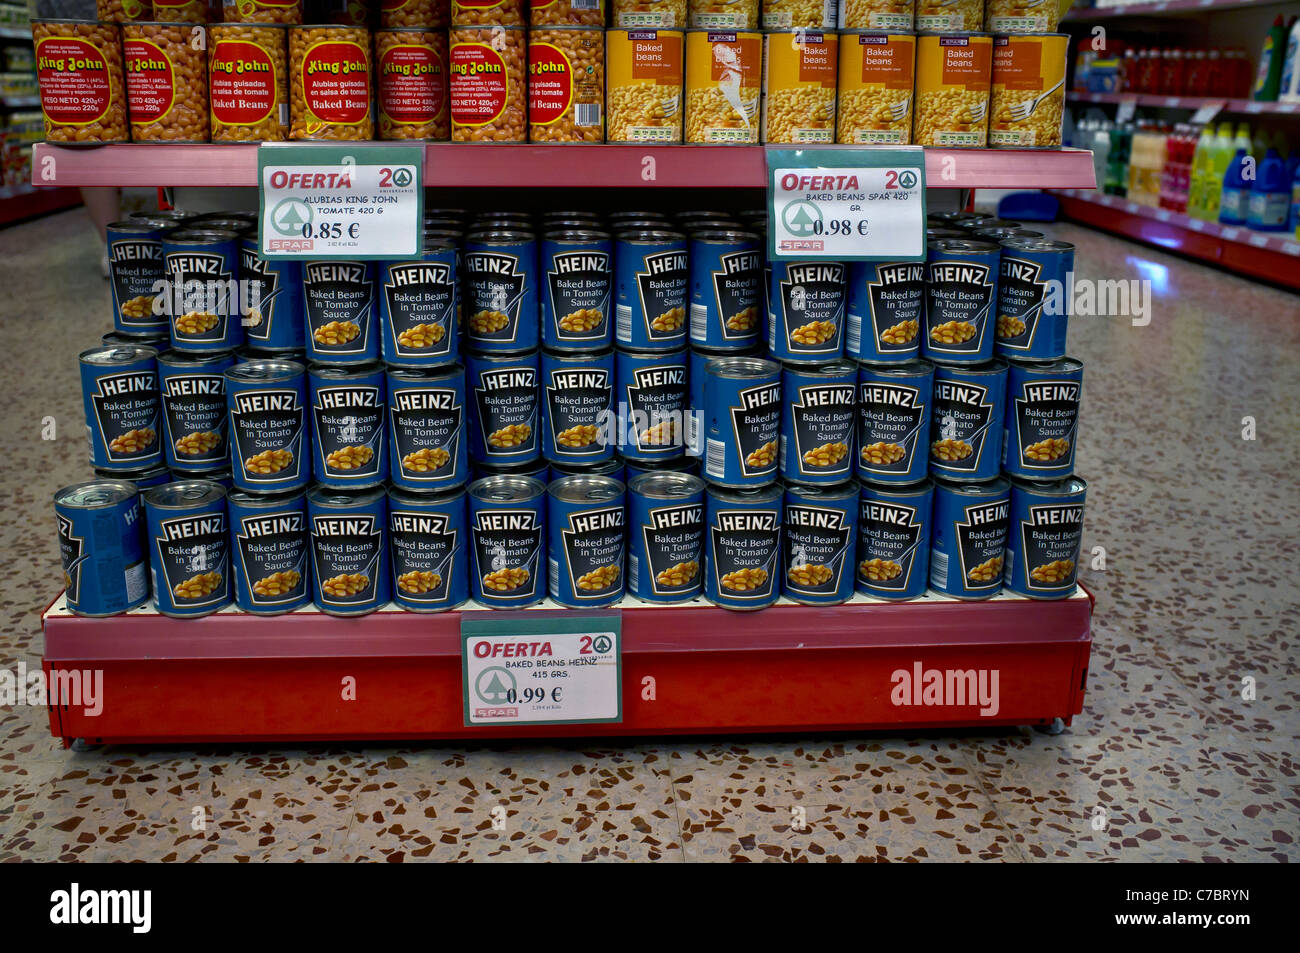 Heinz Baked Beans on sale in Spa supermarket, Menorca, Spain - Stock Image